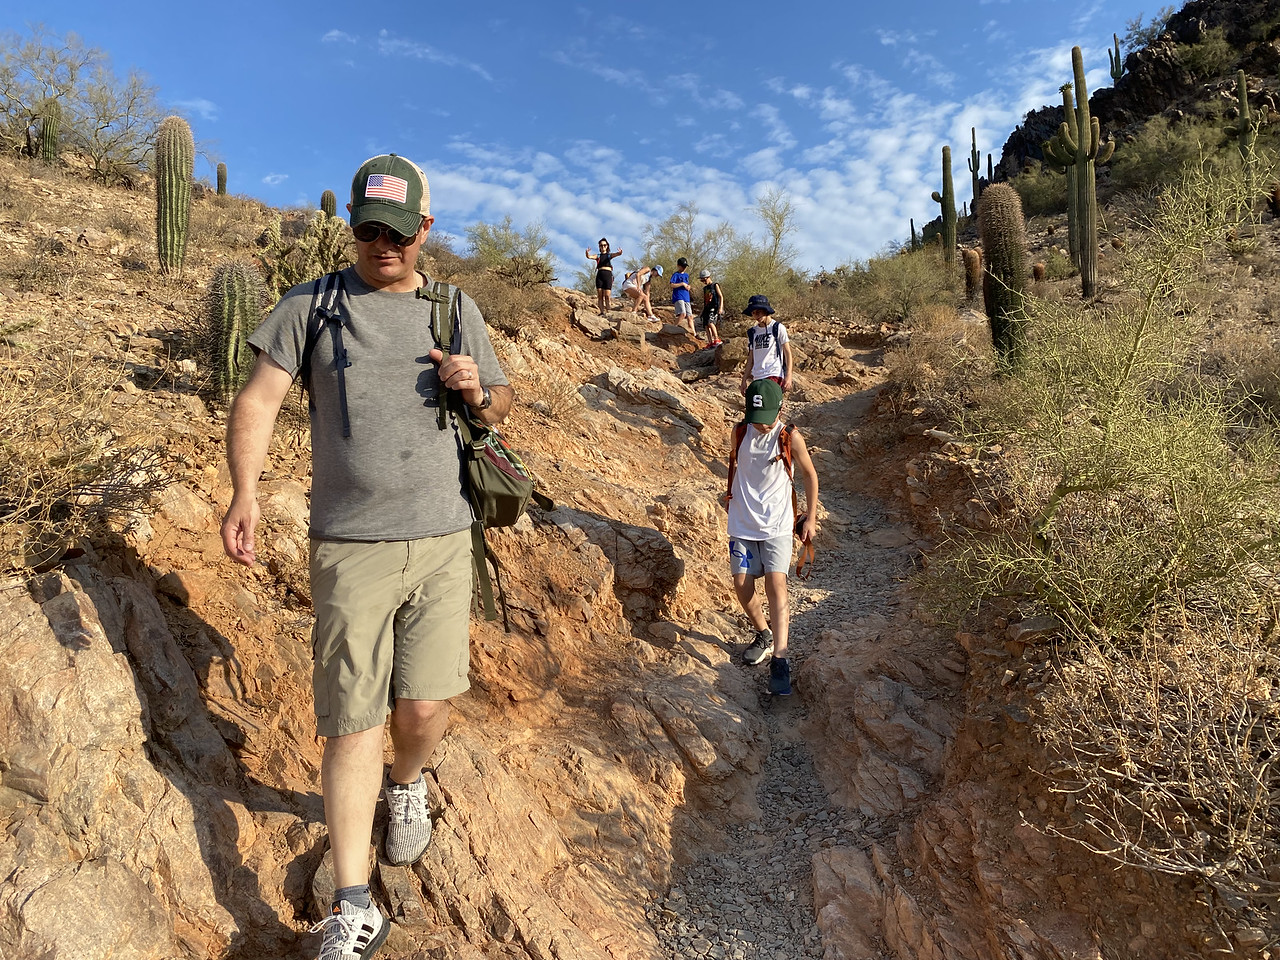 A father is at the front of his family as they stream downhill during one of the Scottsdale hiking tours offered by the Wild Bunch Desert Guides.